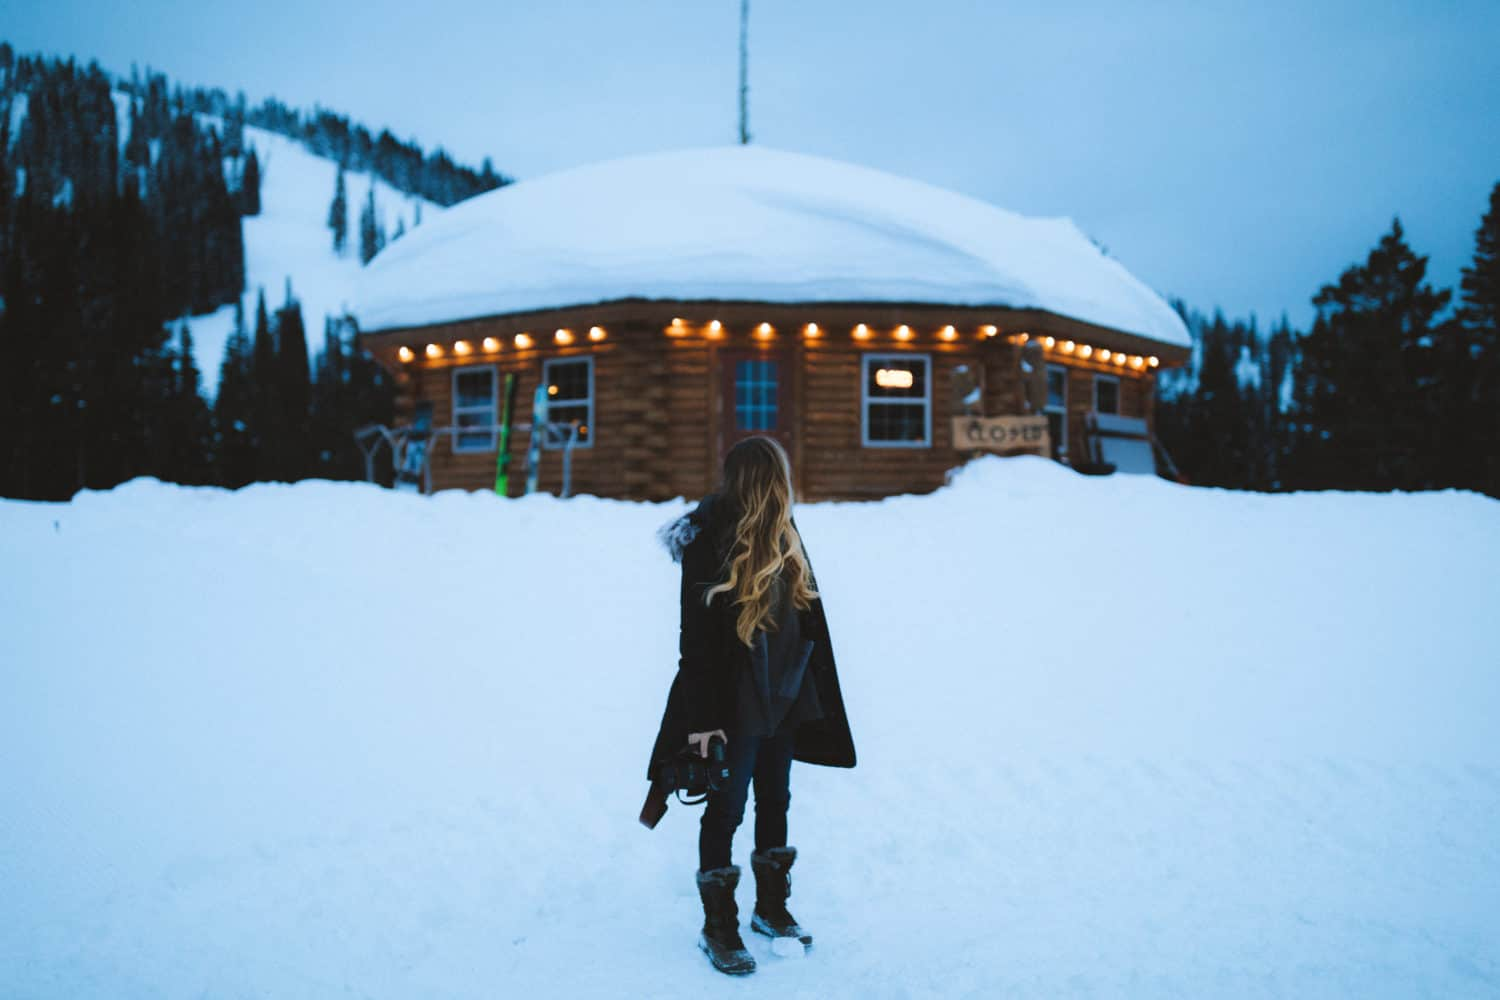 Emily Mandagie at Brundage Mountain in McCall, Idaho -TheMandagies.com